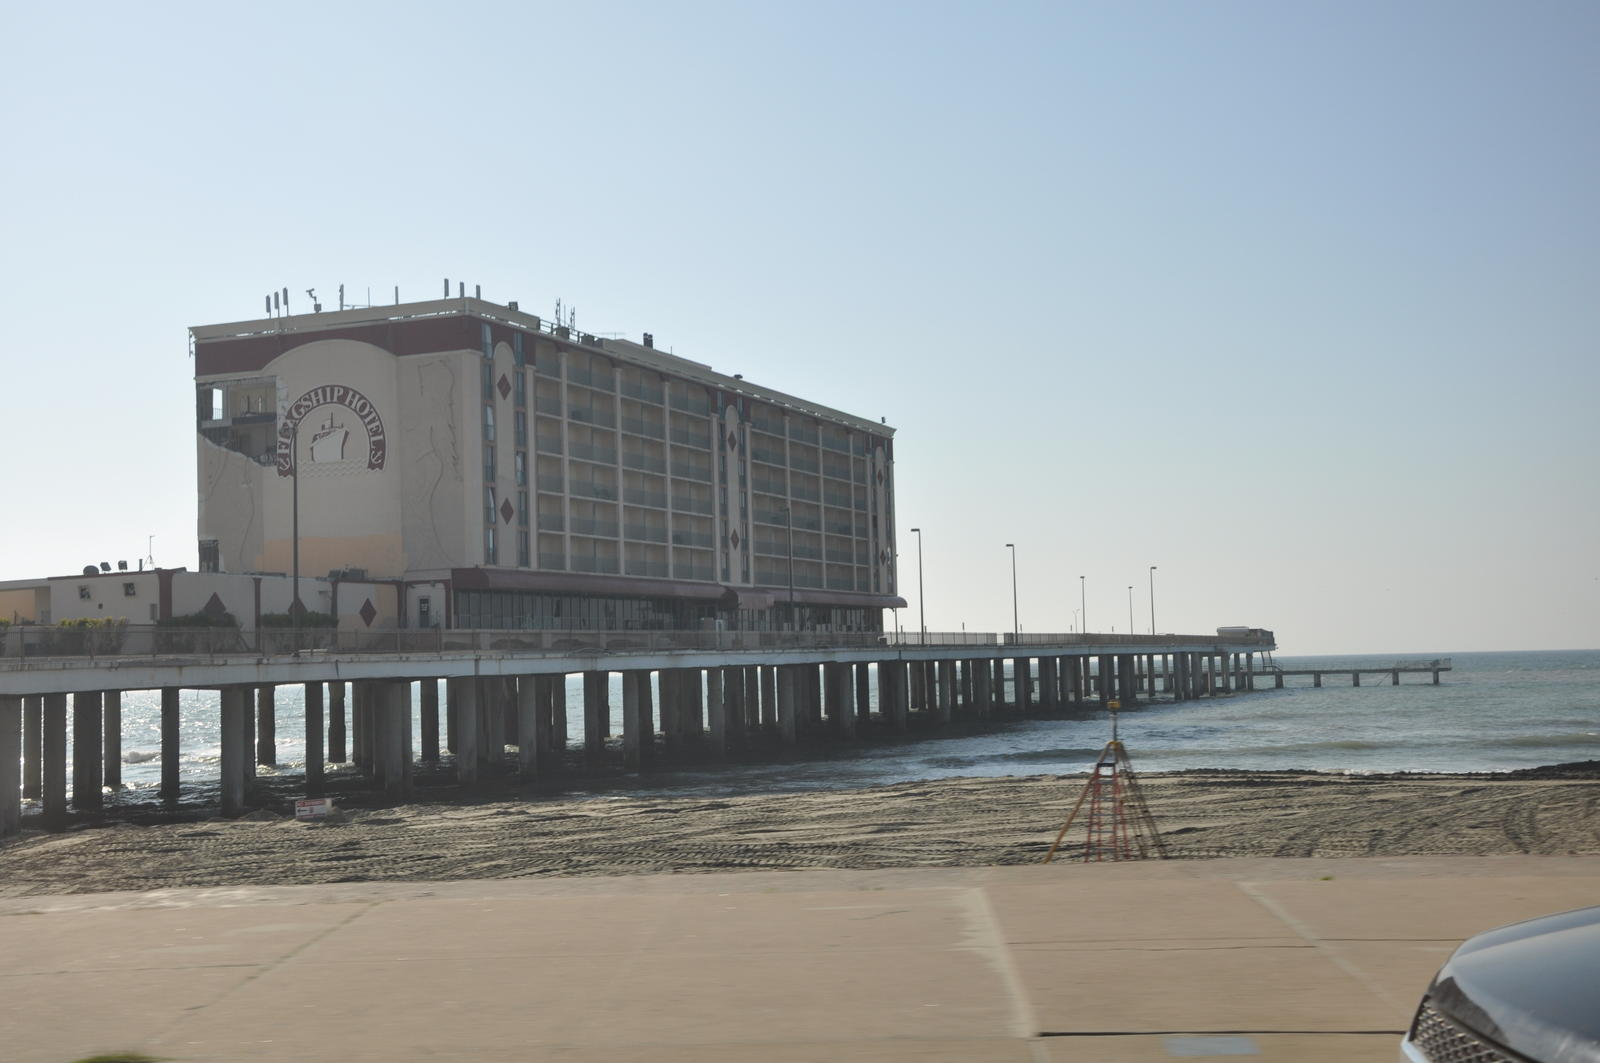 Any Beachfront Hotels In Galveston Boliver After Ike 004 Jpg